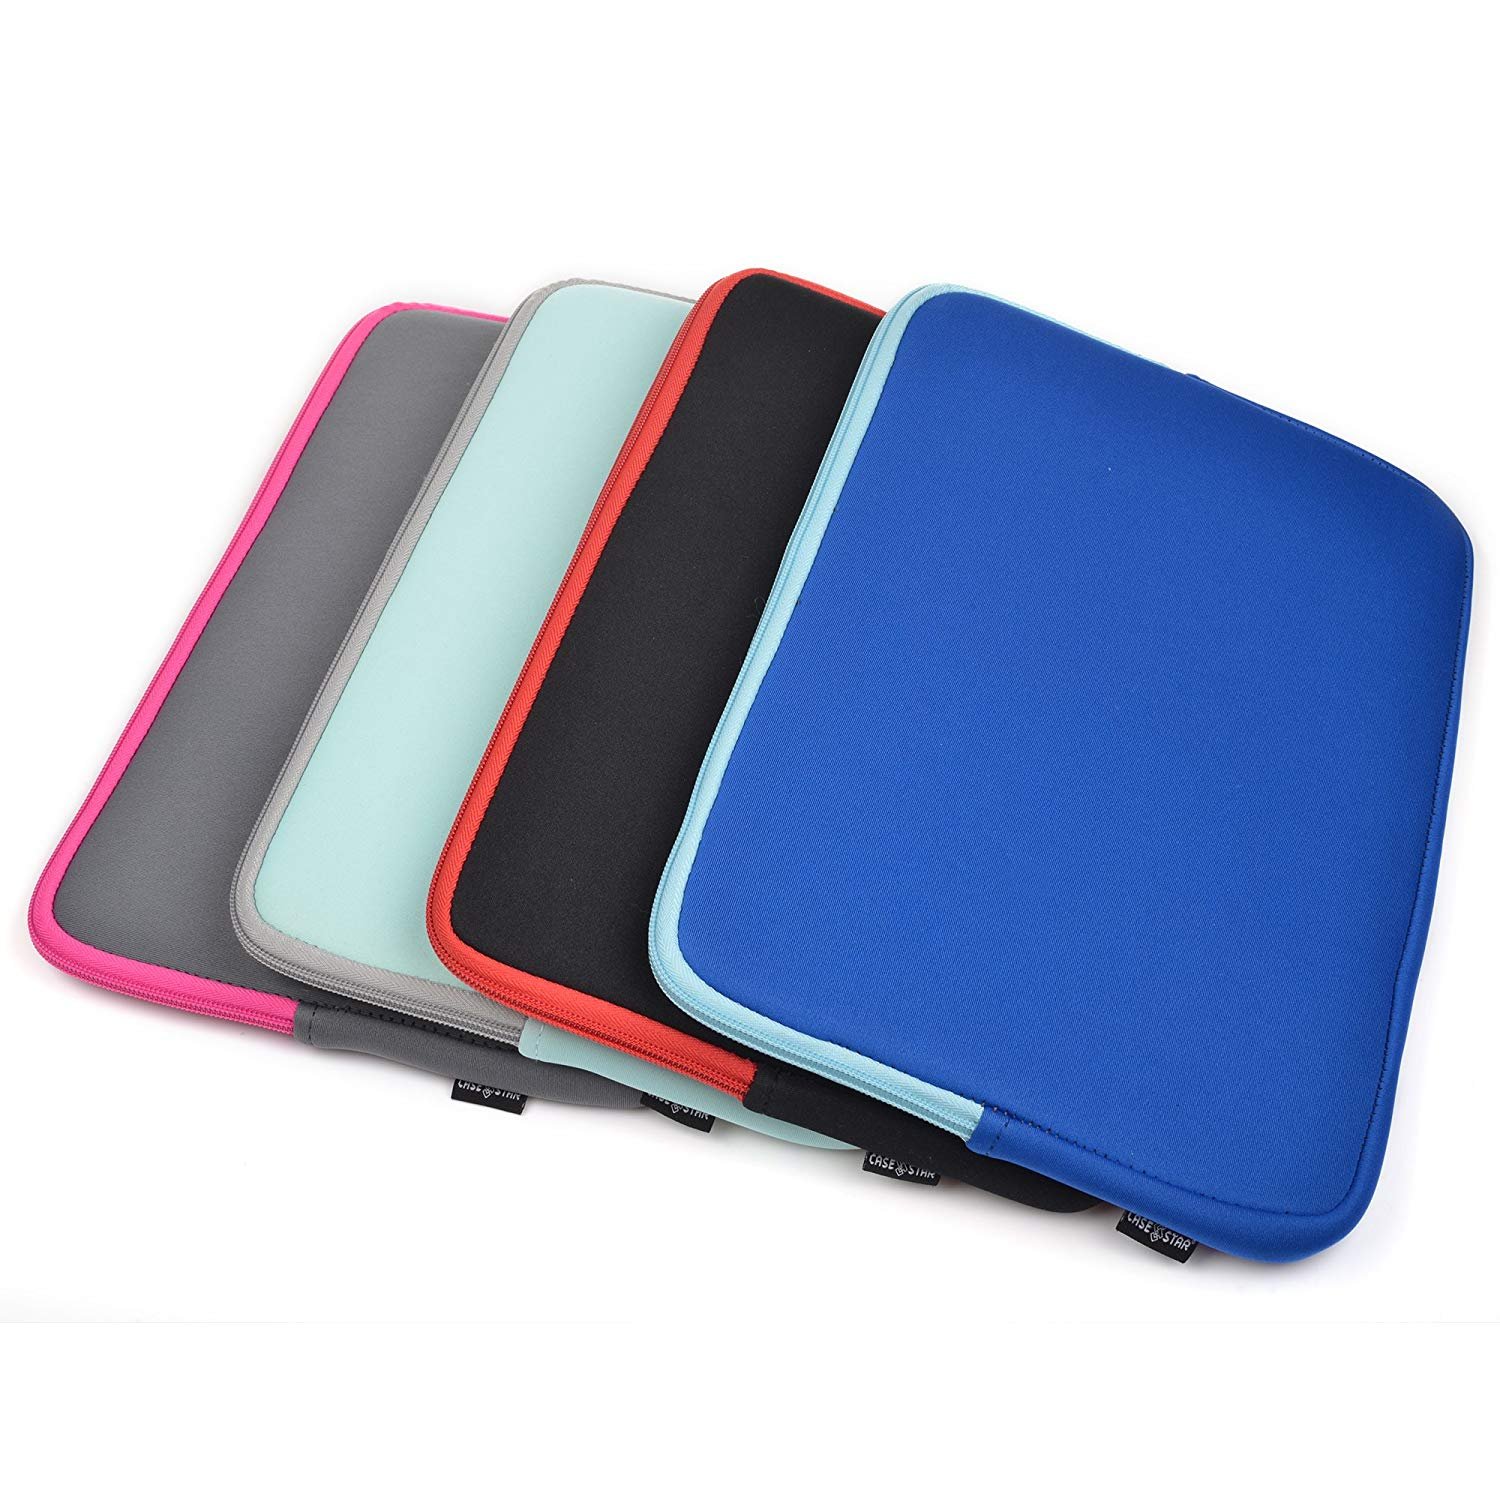 Image result for colorful foam chromebook case